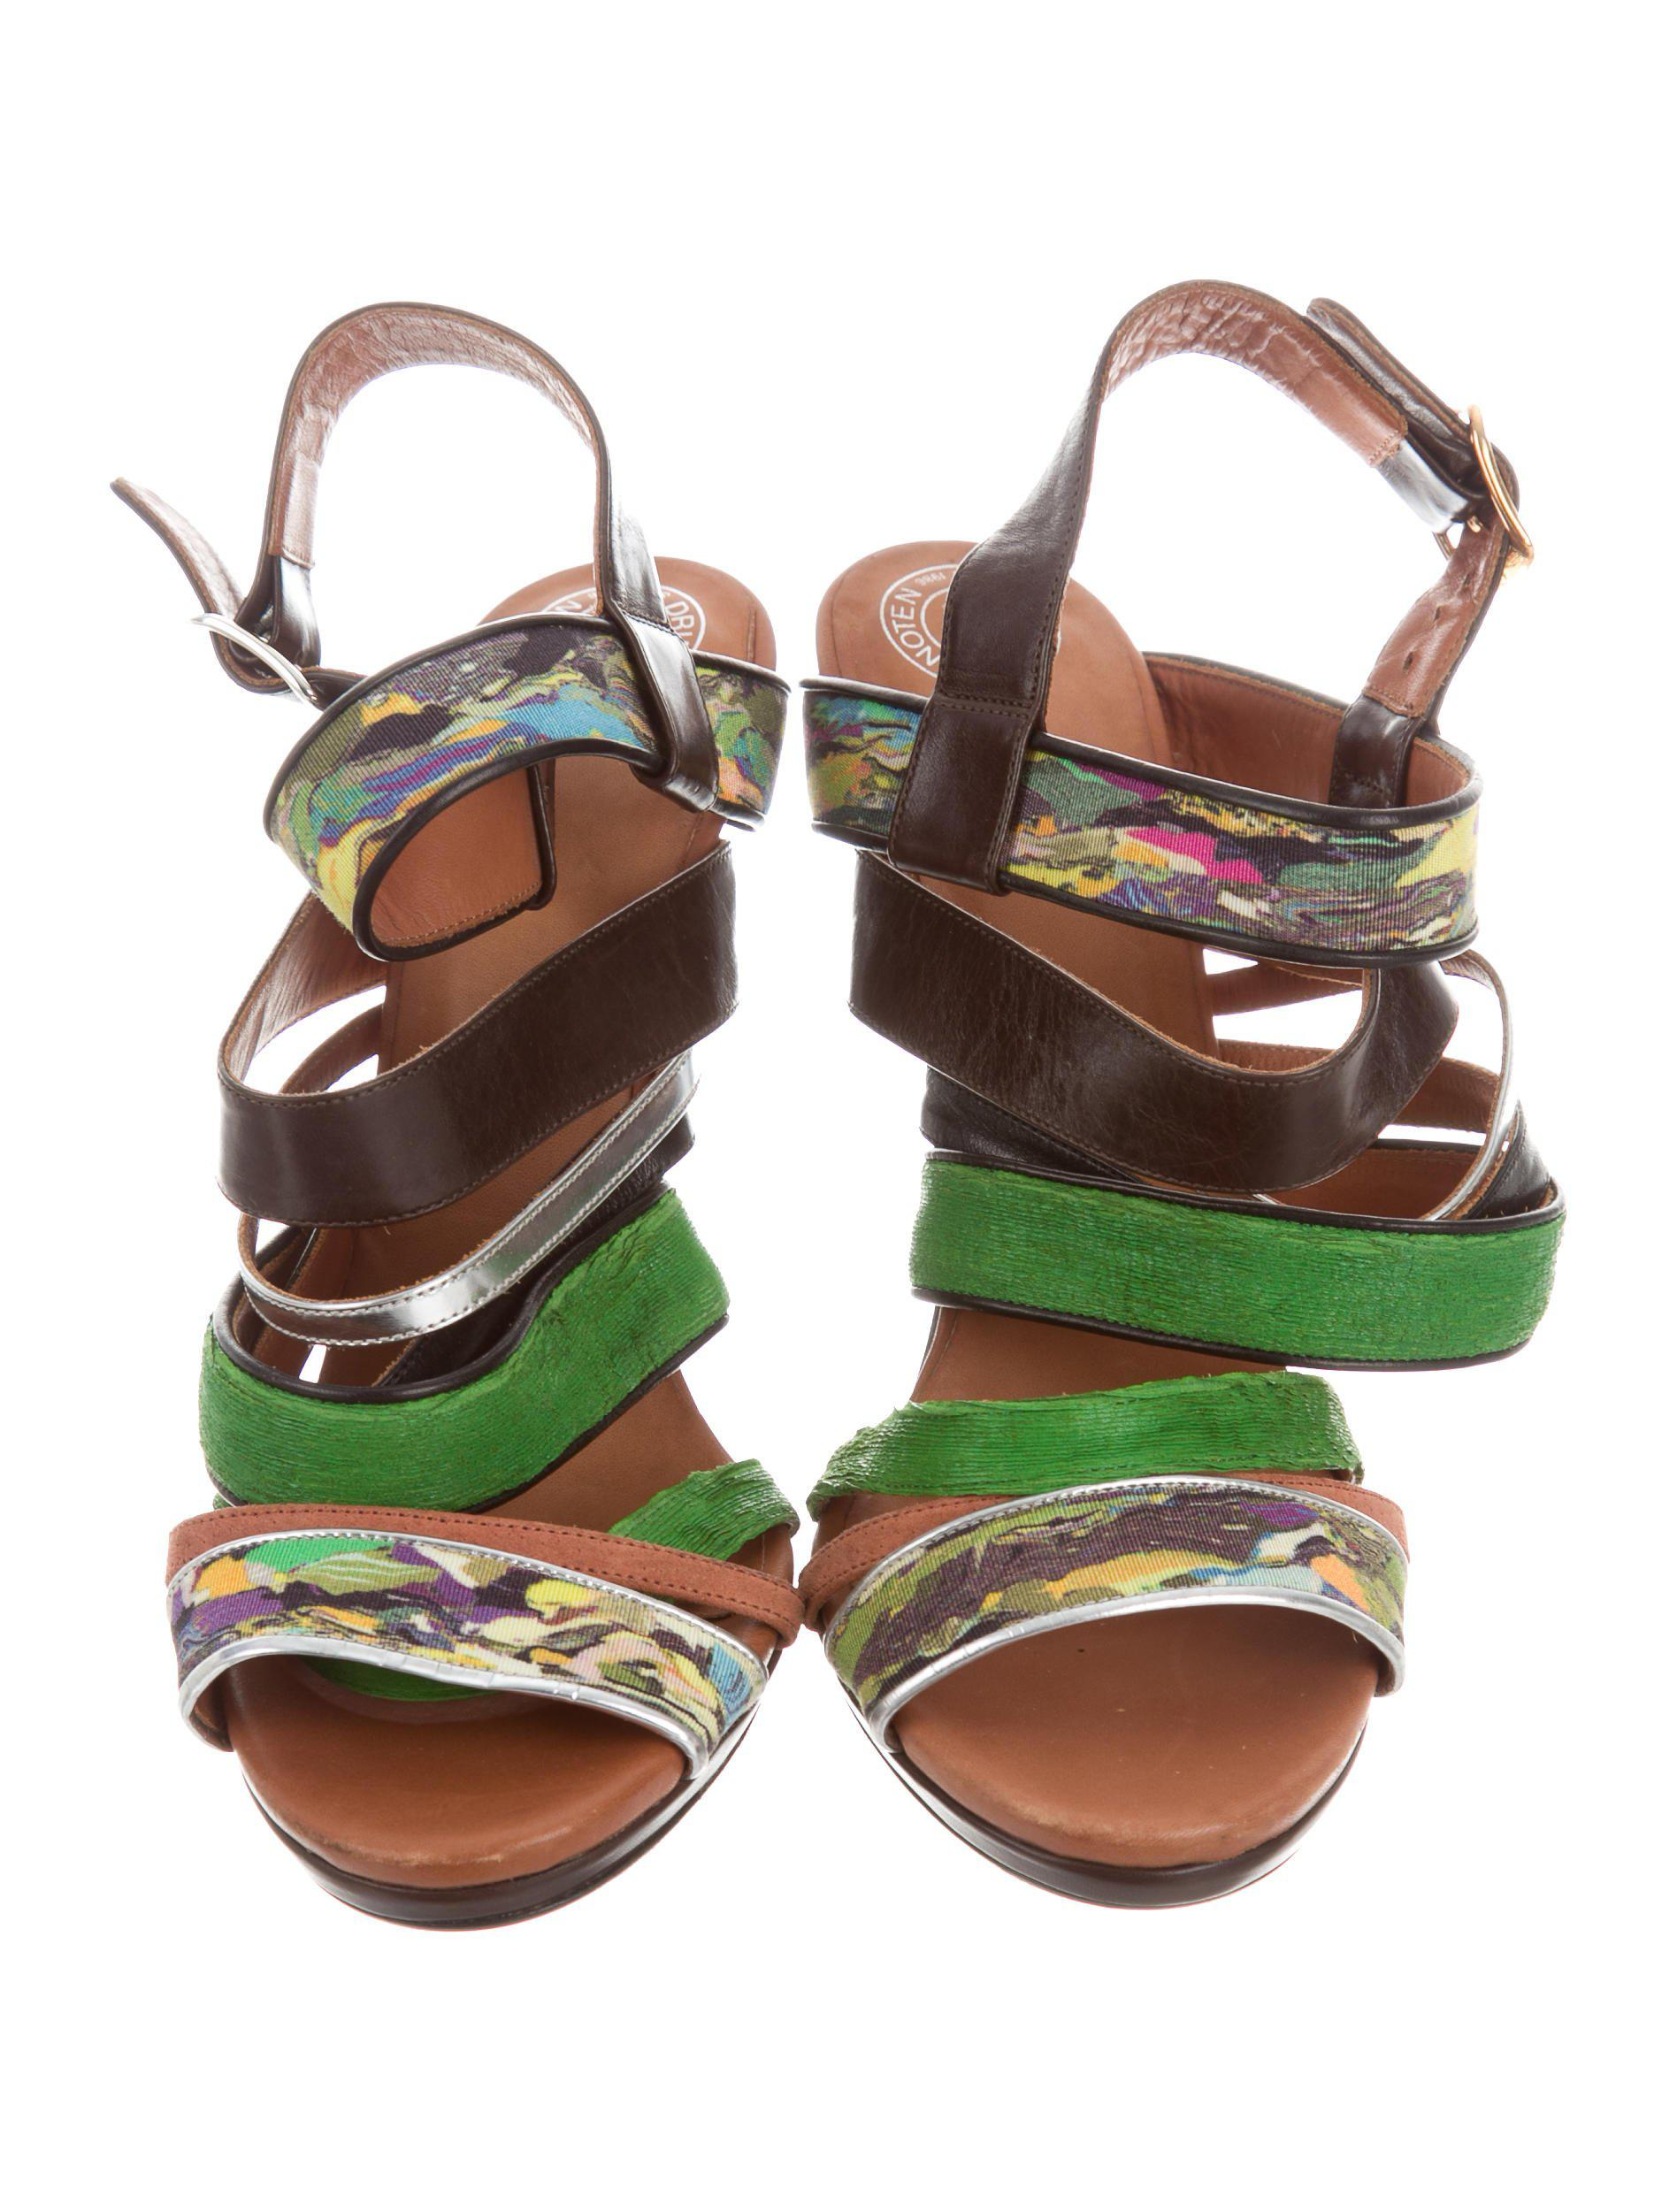 Dries Van Noten Multistrap Leather Sandals sale 100% guaranteed cheap sale from china cheap sale cheapest price u07Q49cW72